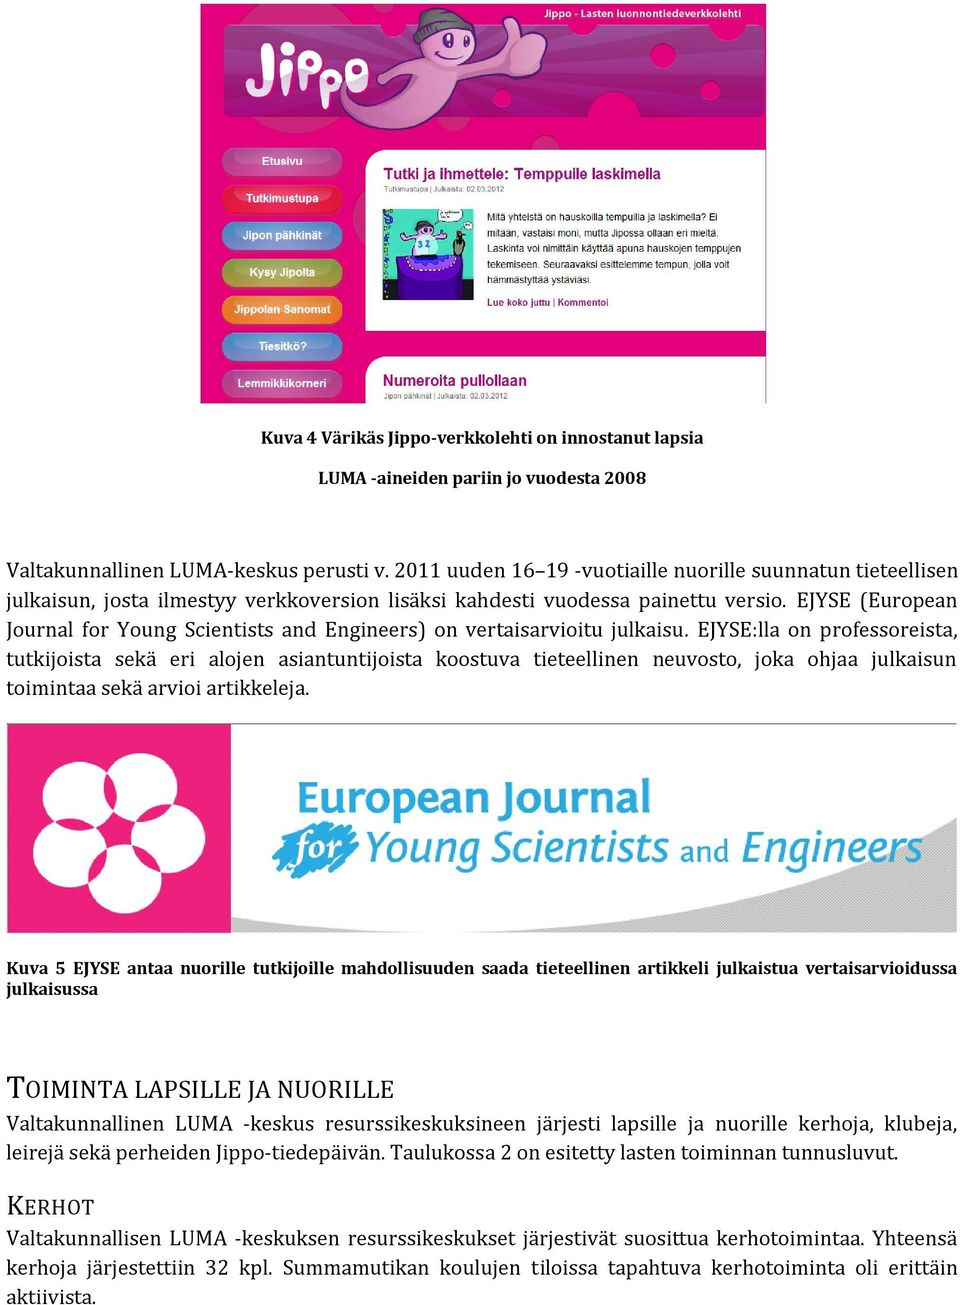 EJYSE (European Journal for Young Scientists and Engineers) on vertaisarvioitu julkaisu.